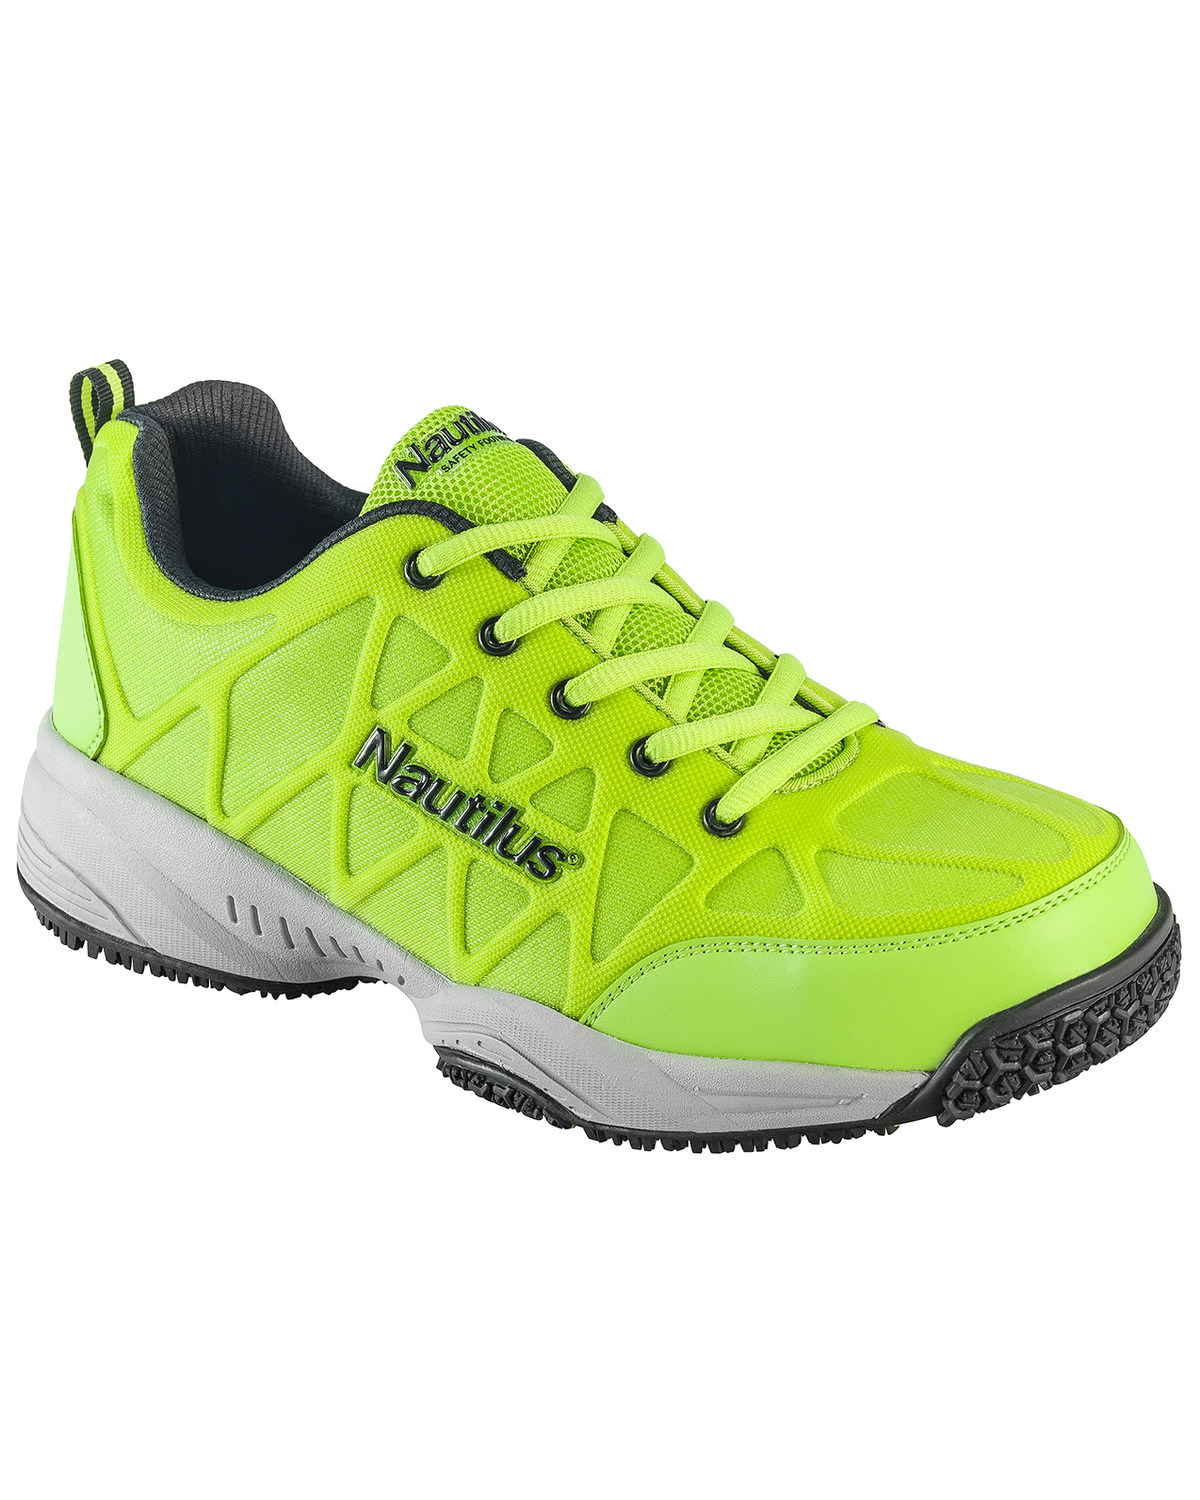 Best Running Shoes Sites